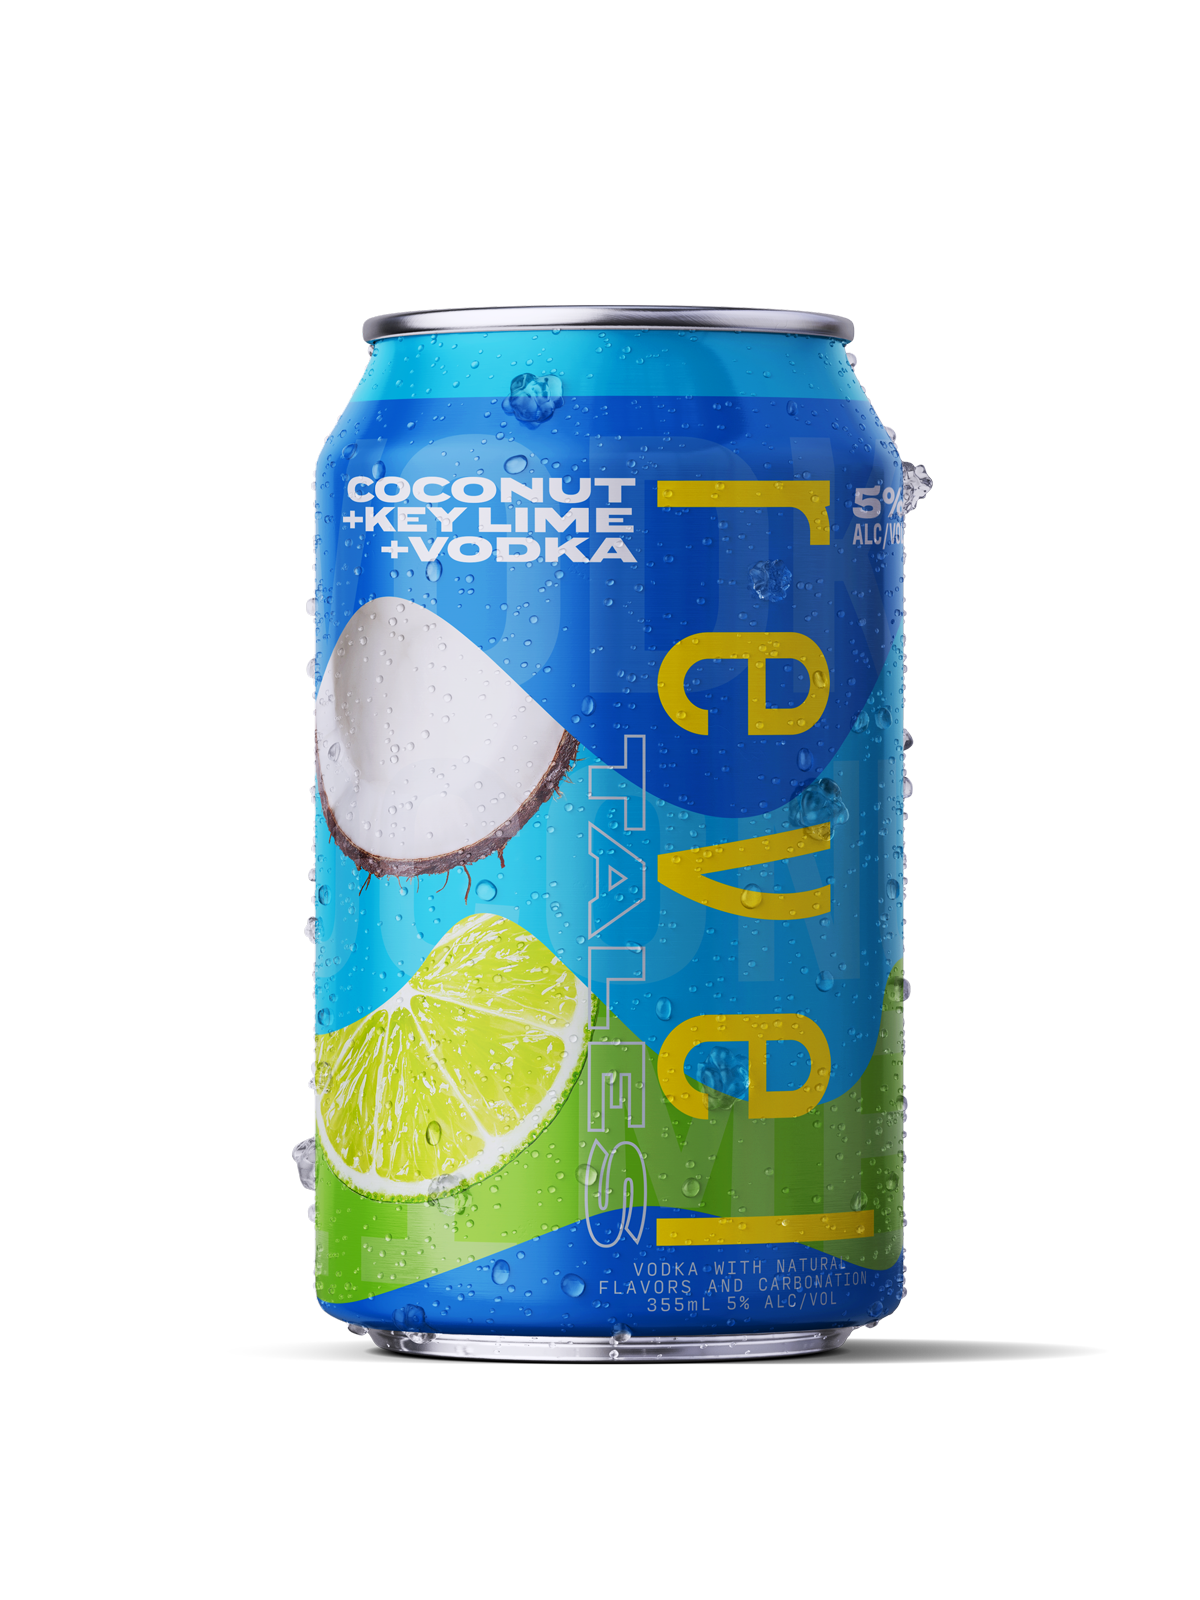 Revel Tales Florida Craft Canned Cocktails. Coconut+Key Lime+Vodka Can.